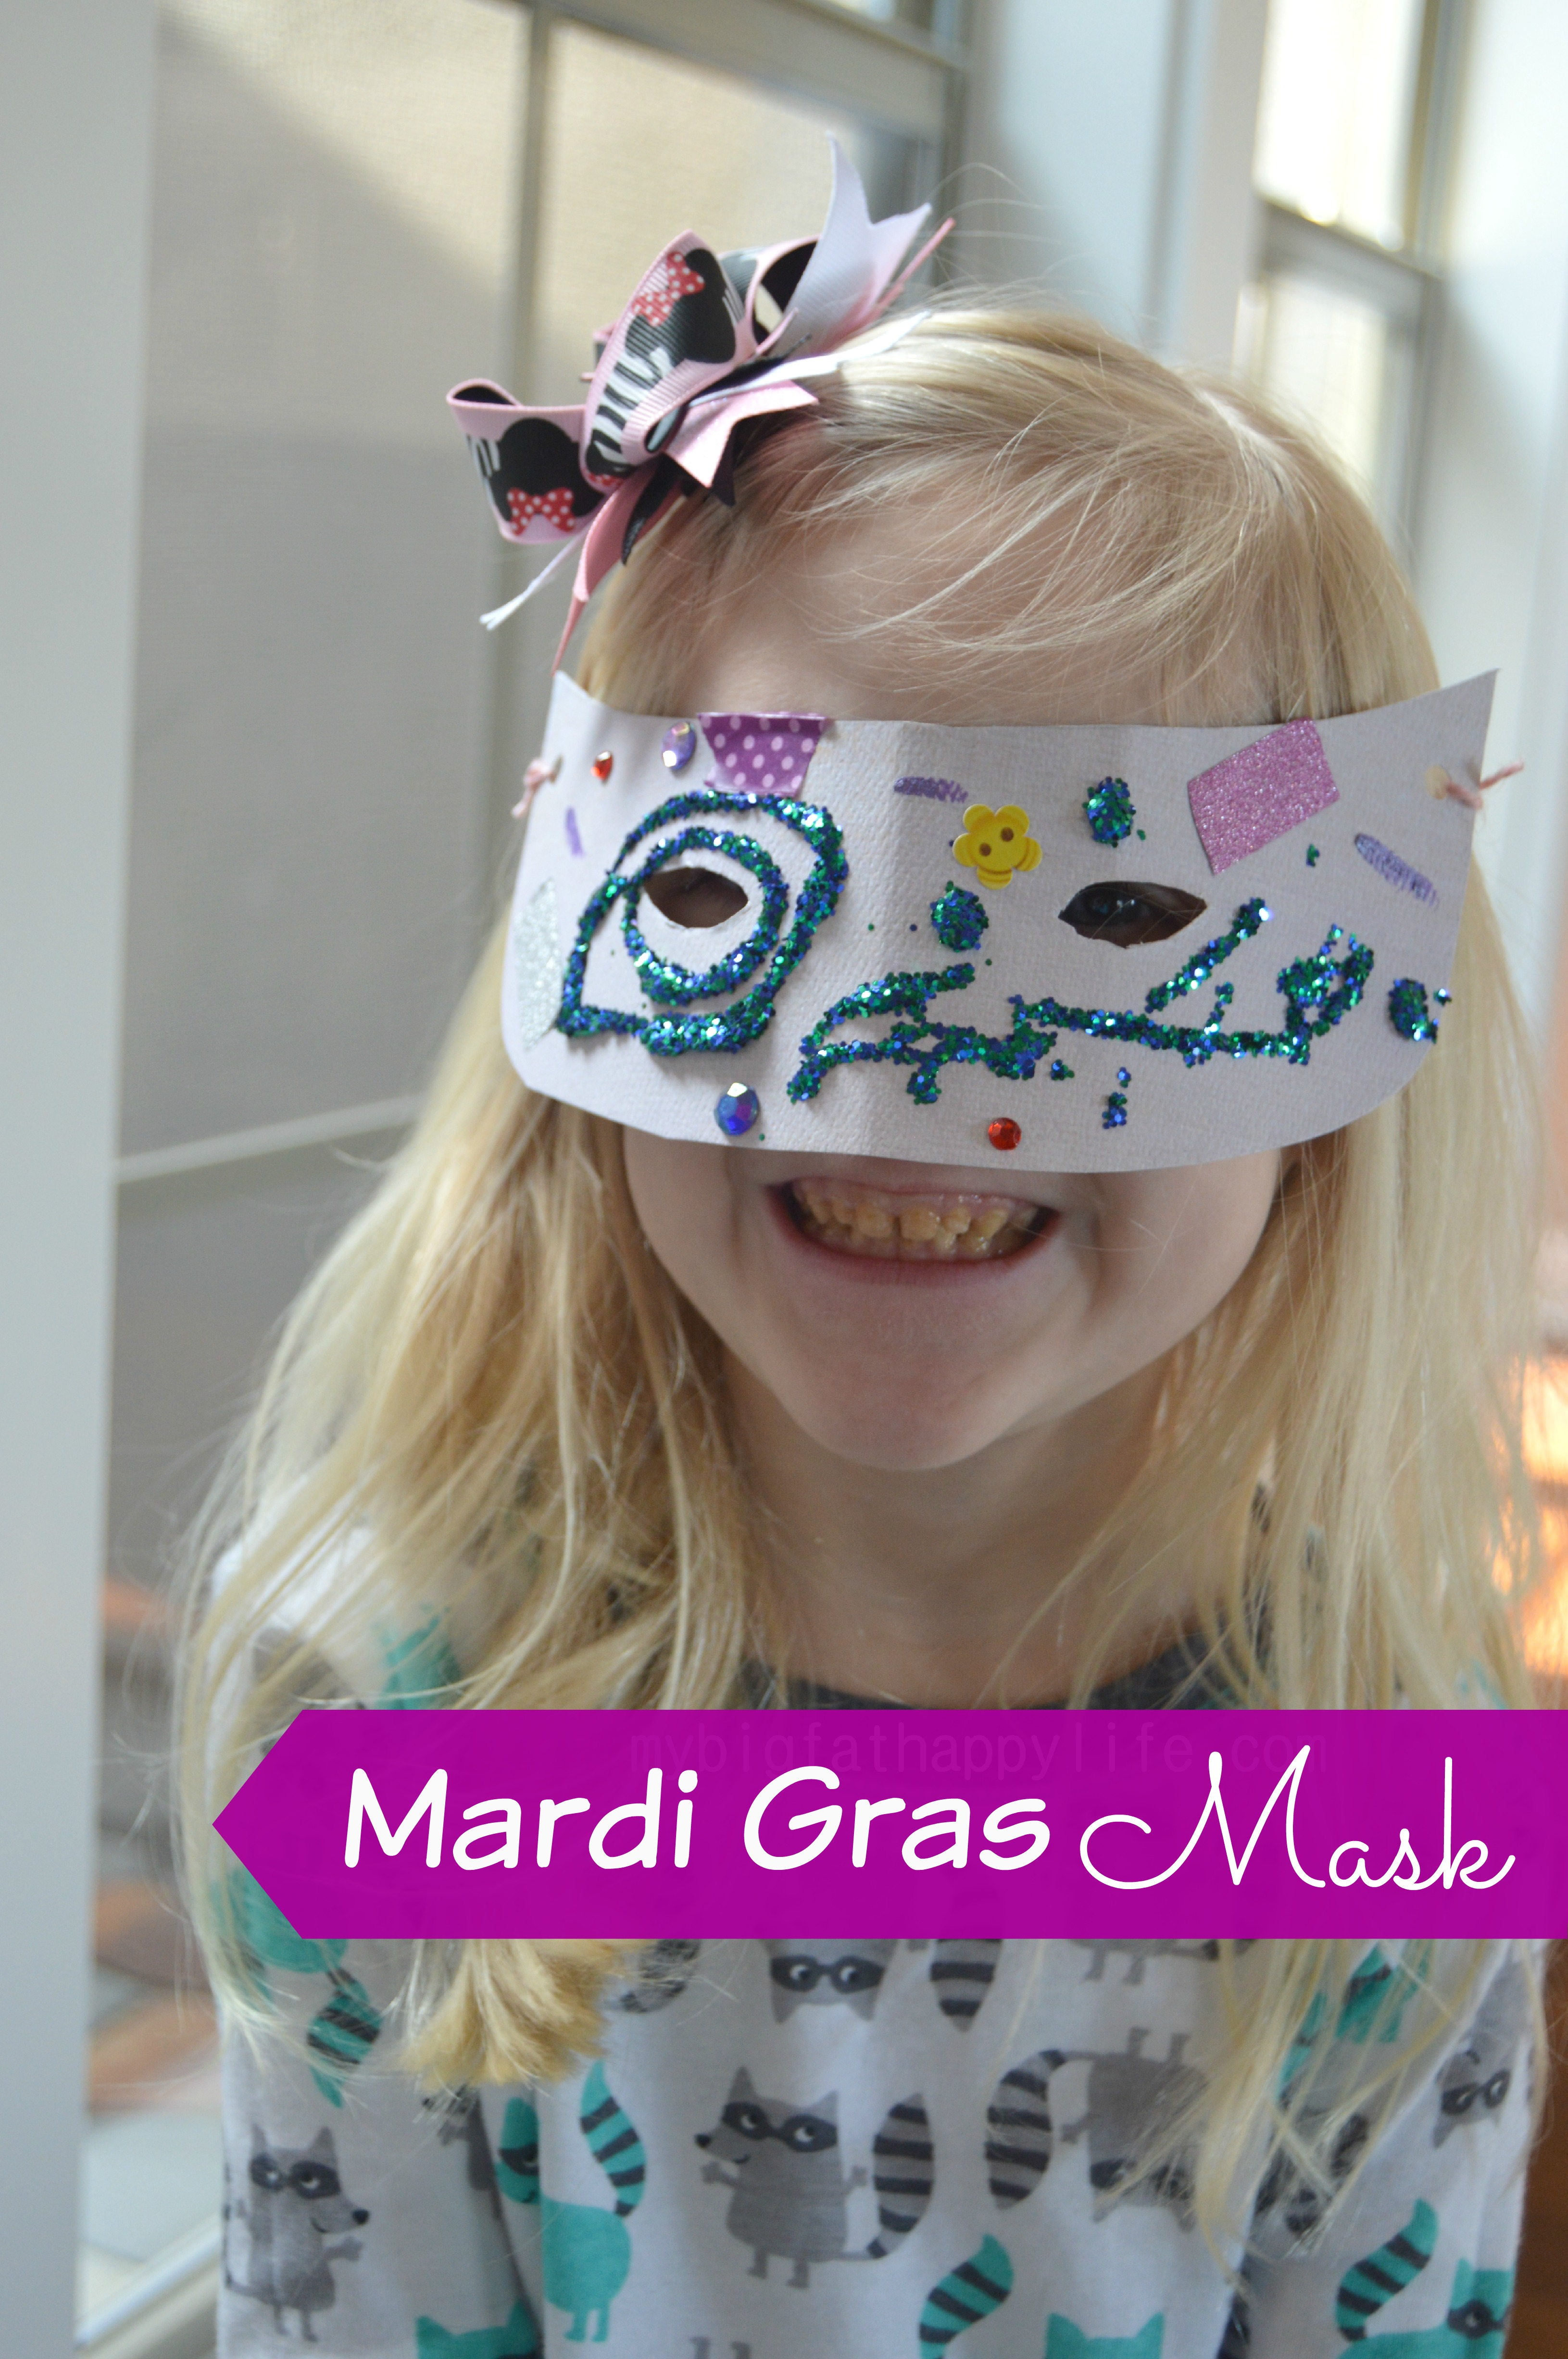 Mardi gras mask my big fat happy life for Mardi gras masks crafts